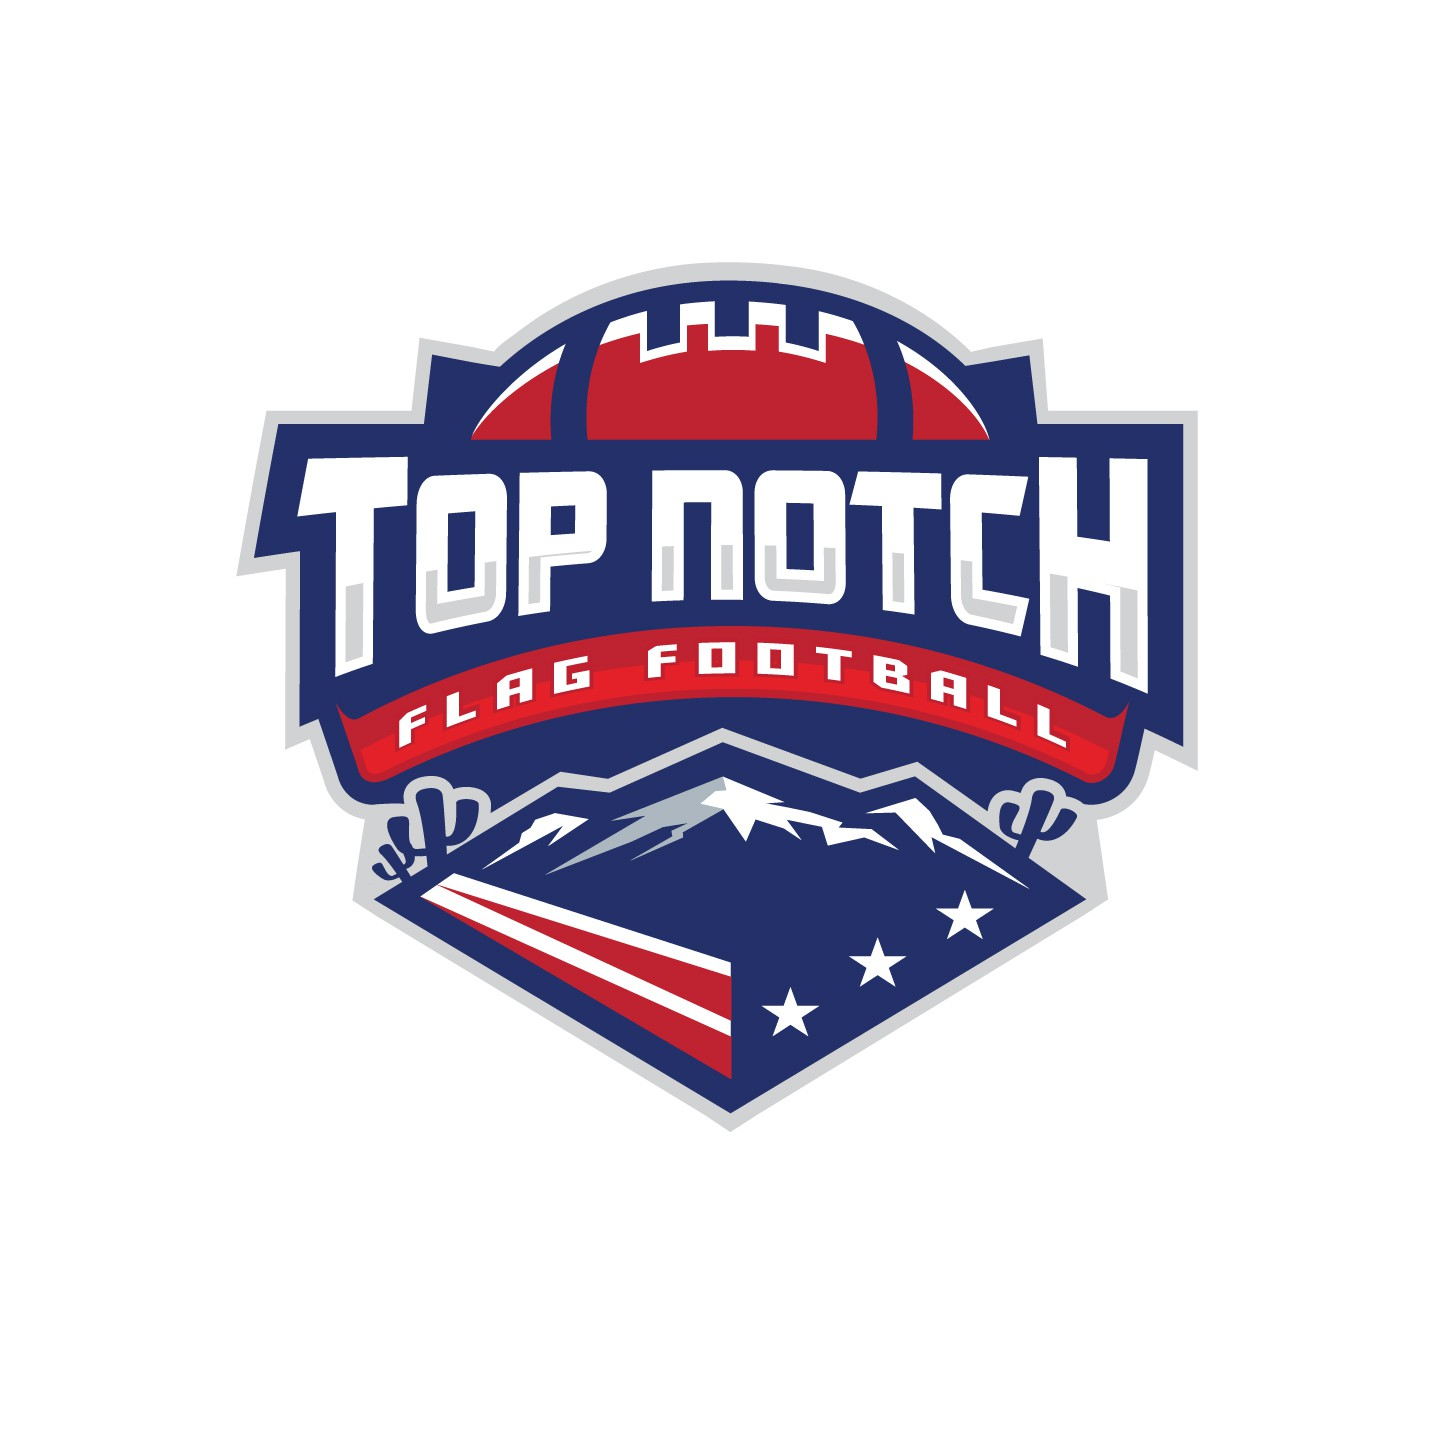 TOP NOTCH YOUTH SPORTS